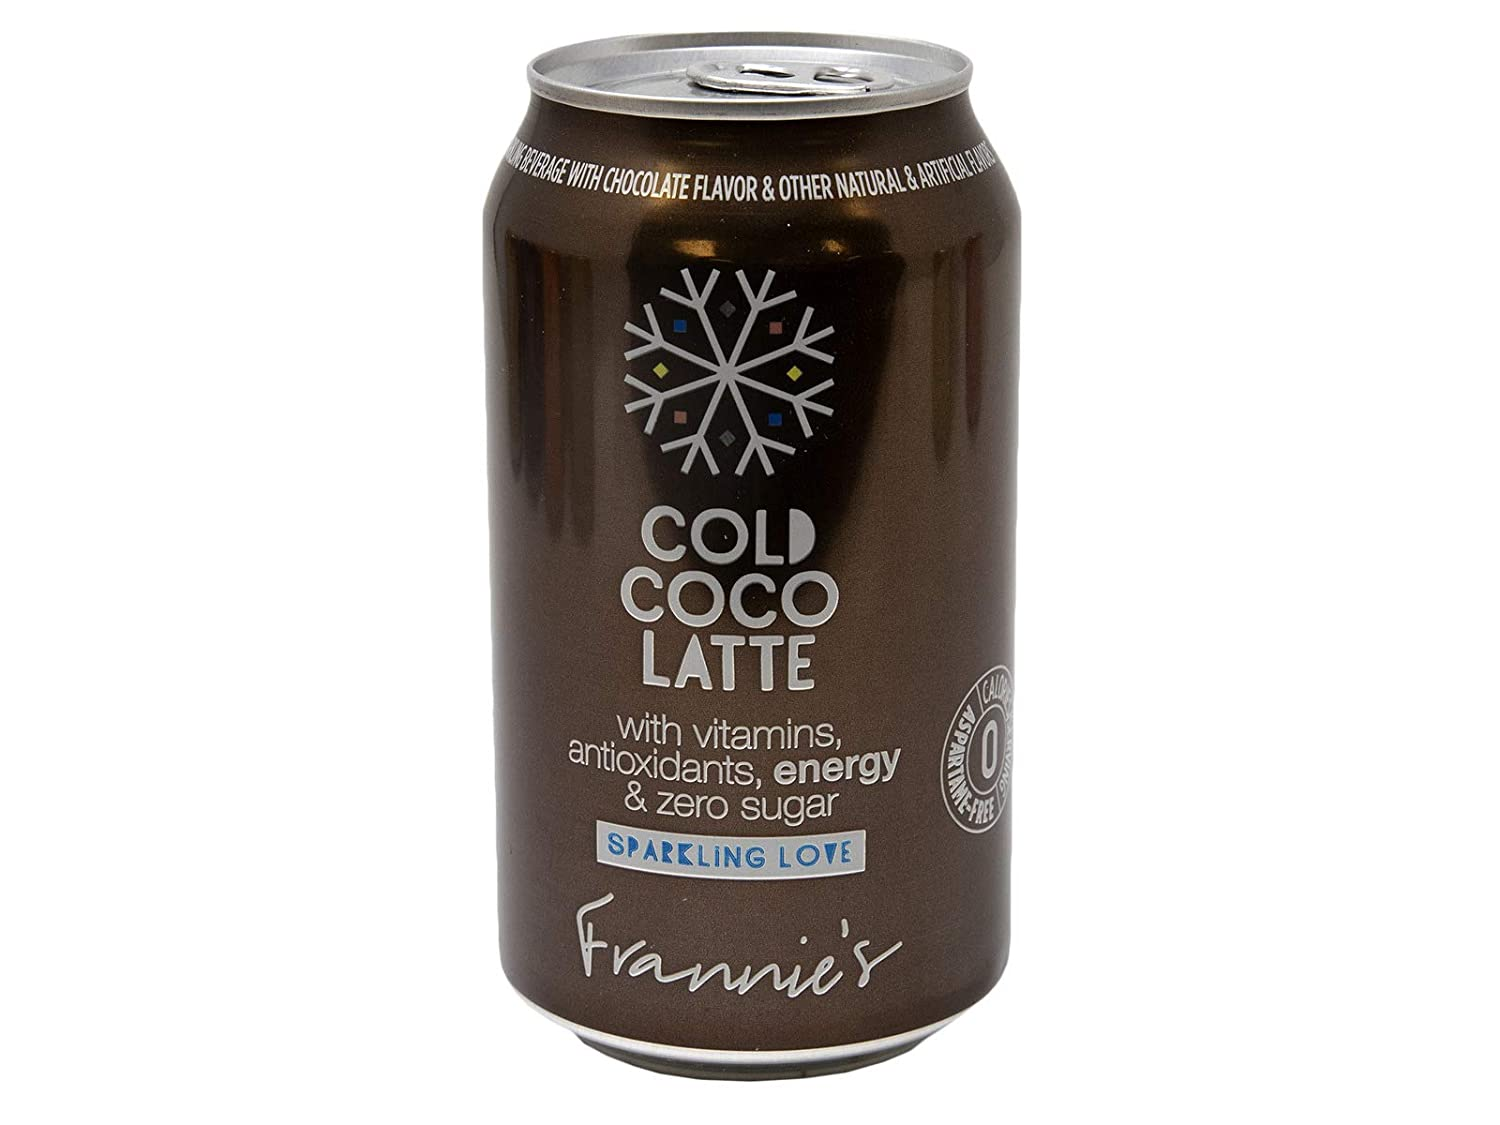 Frannie's Sparkling Cold Coco Latte, Protected With High-Density Foam, With Vitamins, Antioxidants, Energy, and Zero Sugar, 12 Oz. Cans (Case of 24 Cans)